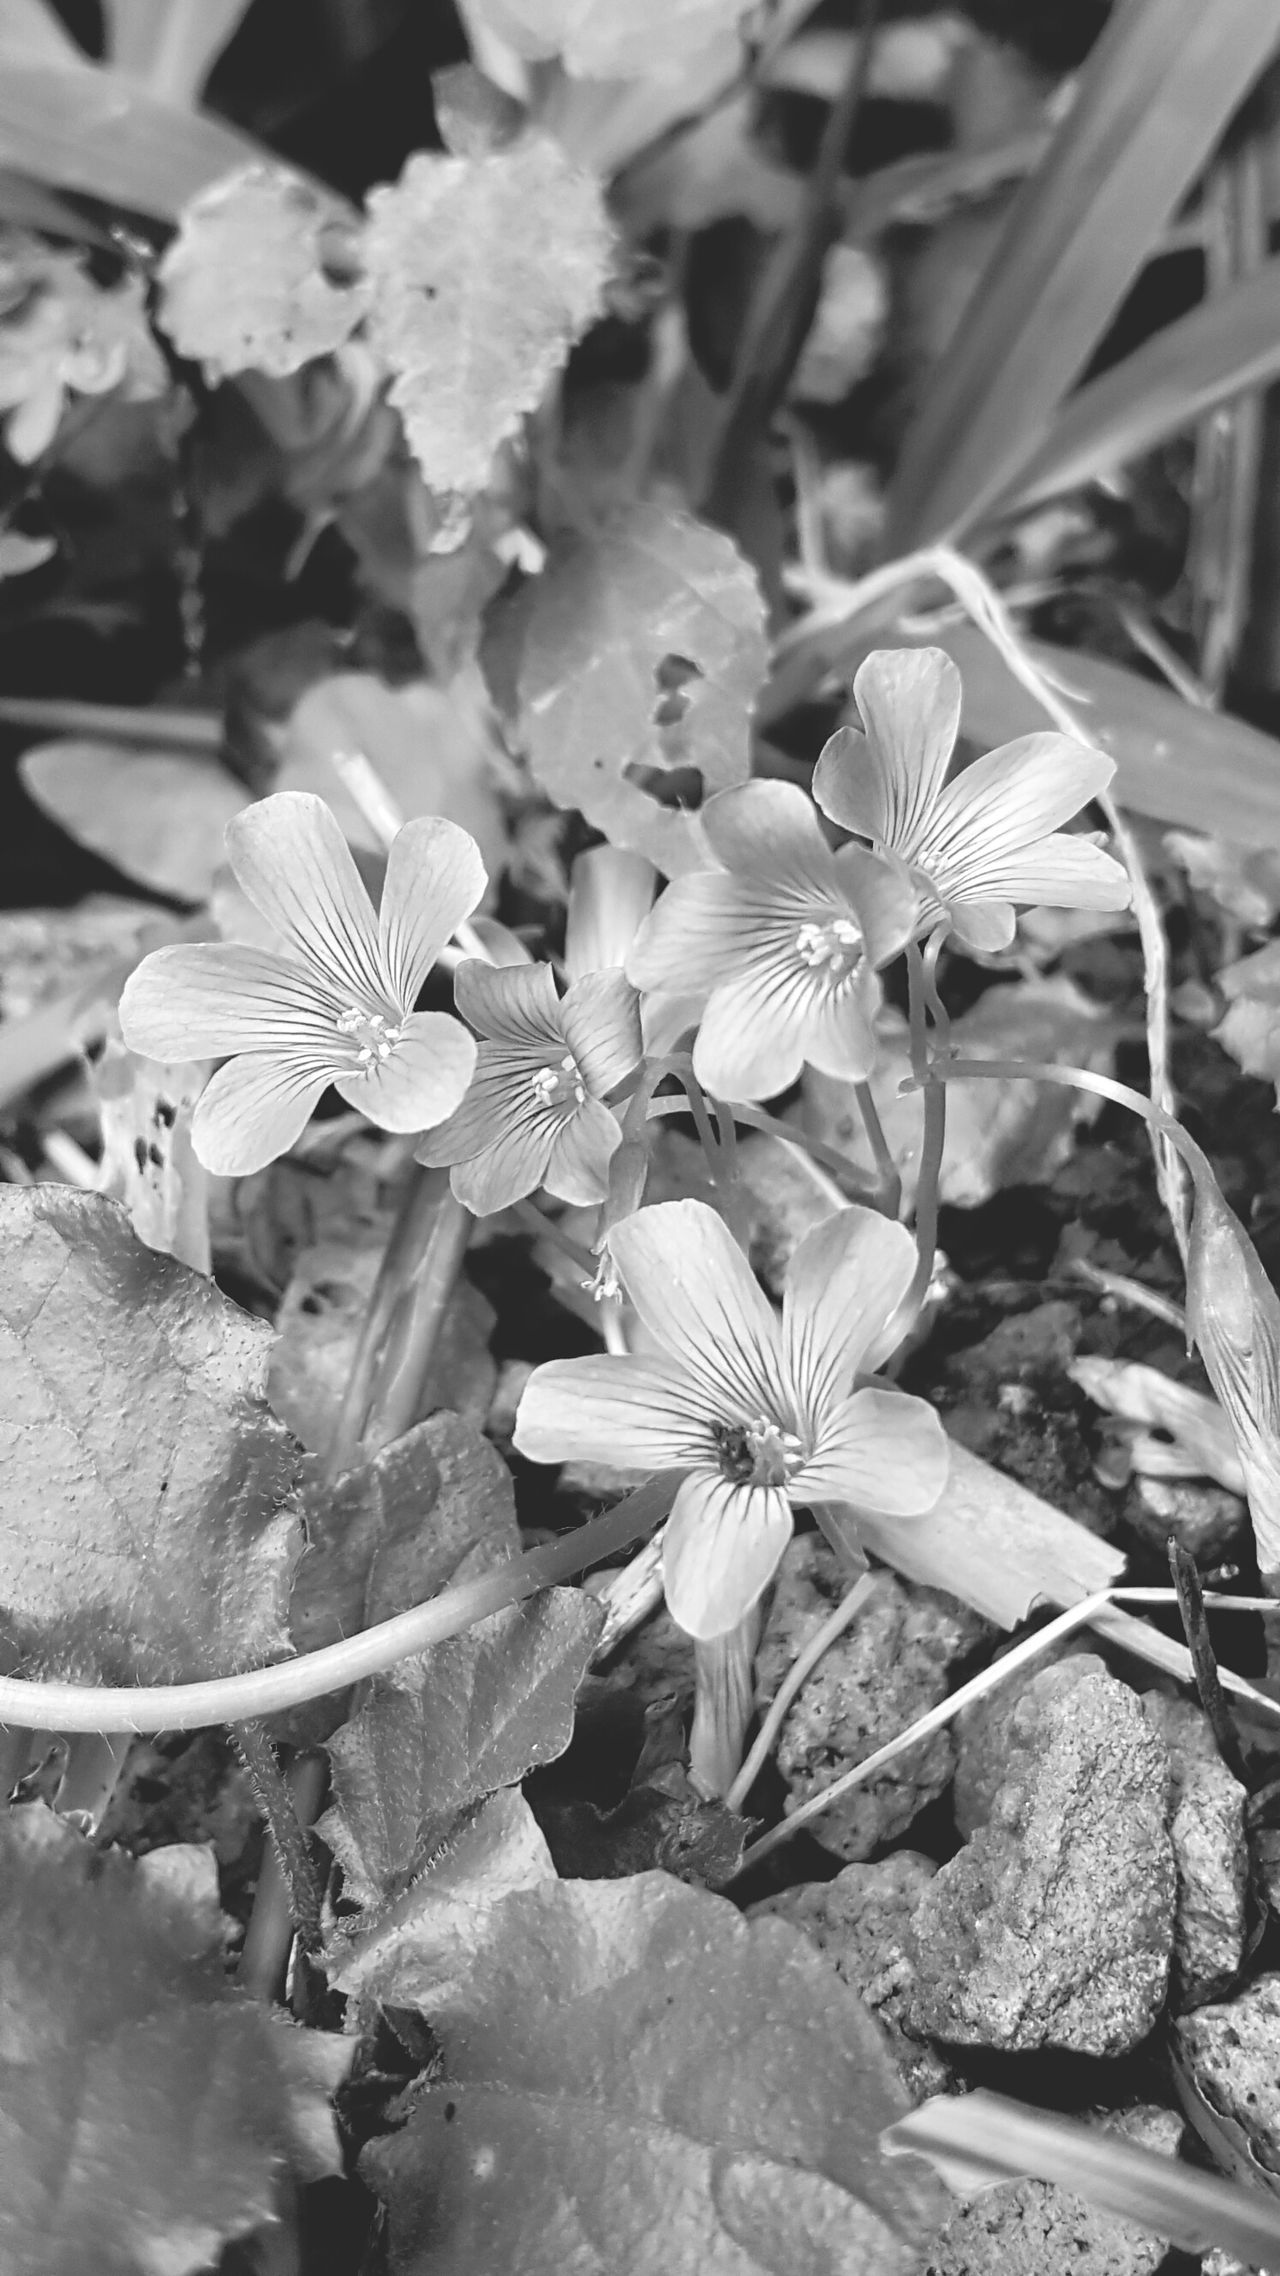 Flower Beauty In Nature Black And White Photography Outdoors Kauai Hawaii